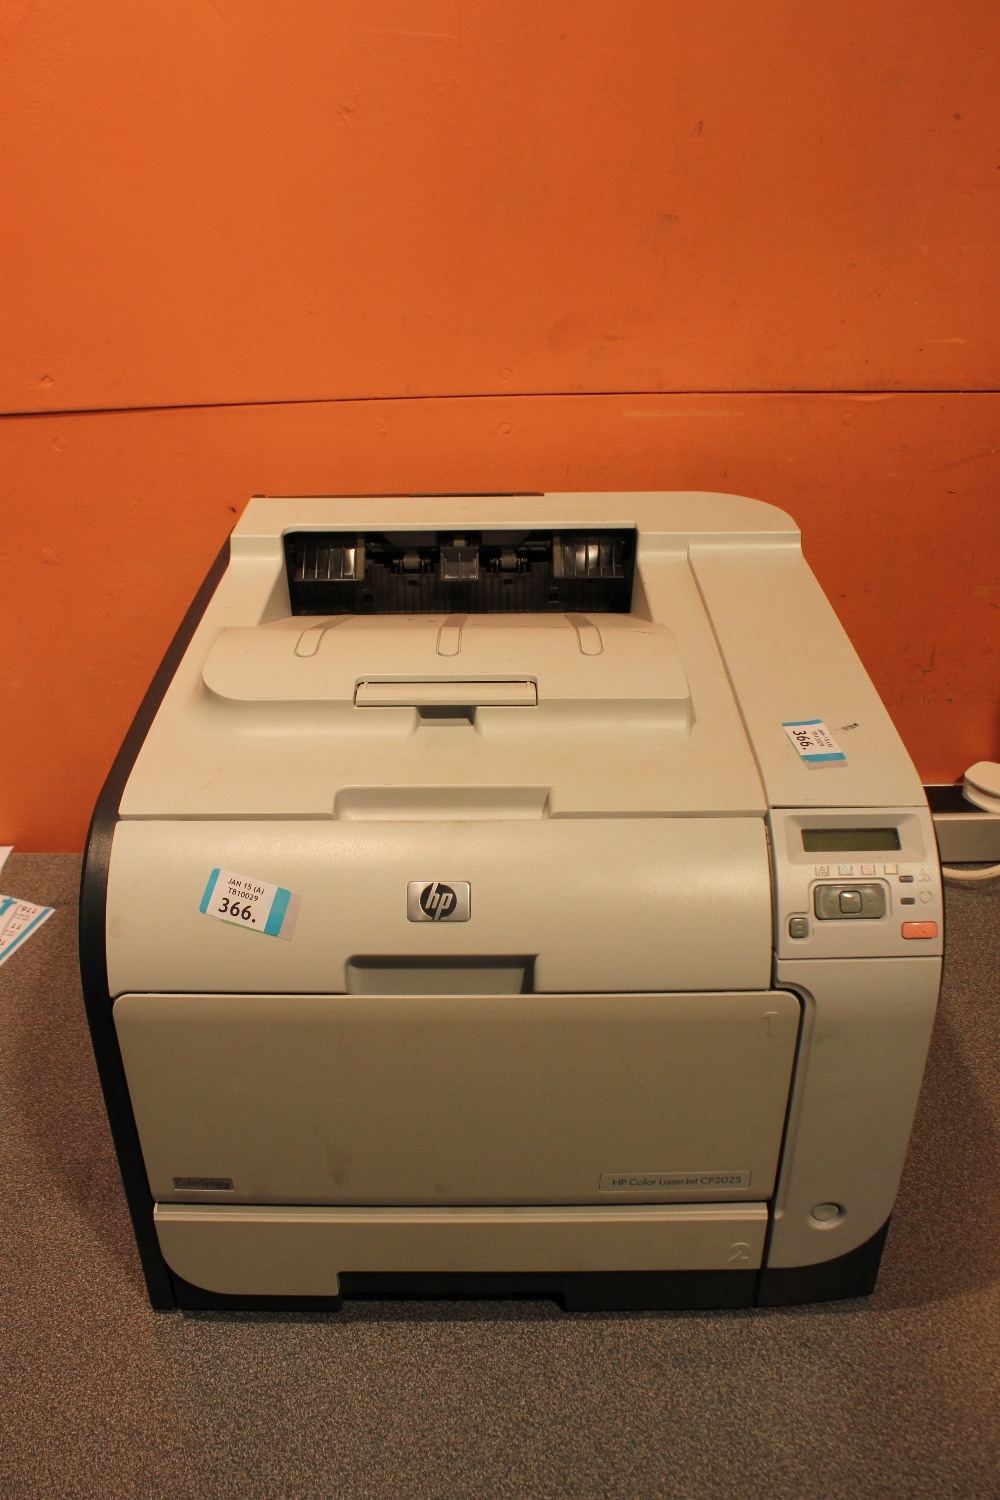 Lot 366 - HP Color LaserJet CP2025 Printer - USB - Network - Test Page Ok